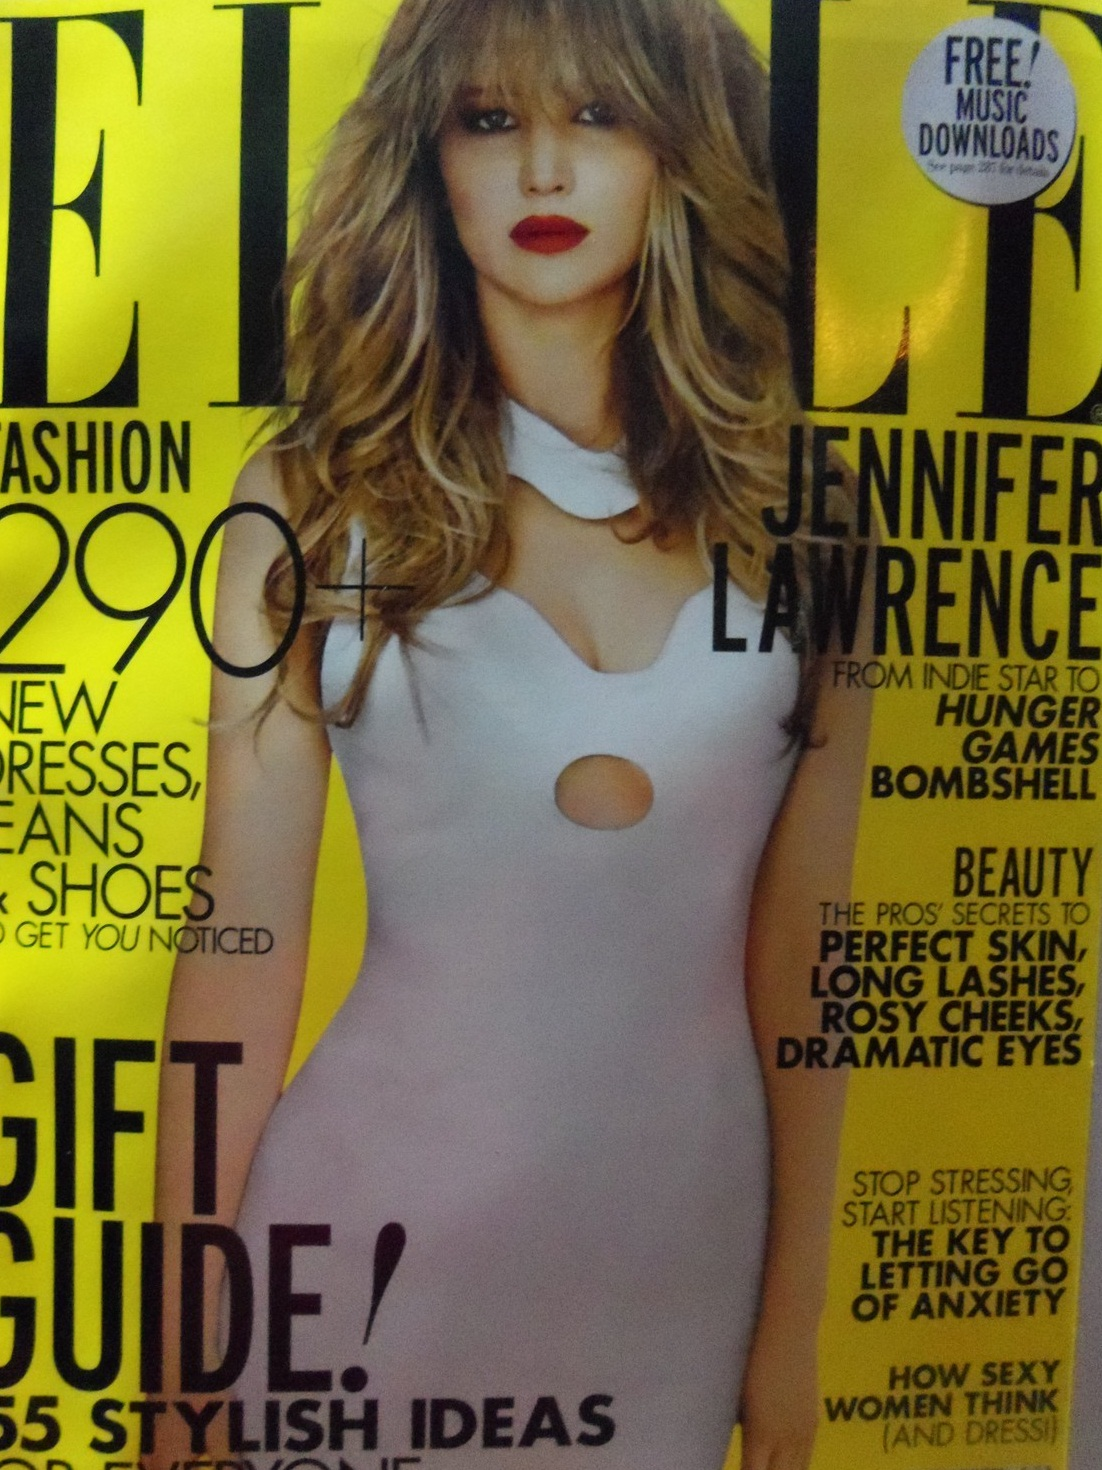 http://3.bp.blogspot.com/-r967mM8qLRA/UJfviuGsvwI/AAAAAAAACA0/UpHoIC4gU7I/s1600/Jen-covers-Elle-US-December-2012-two-alternate-covers-jennifer-lawrence-32659919-1102-1470.jpg